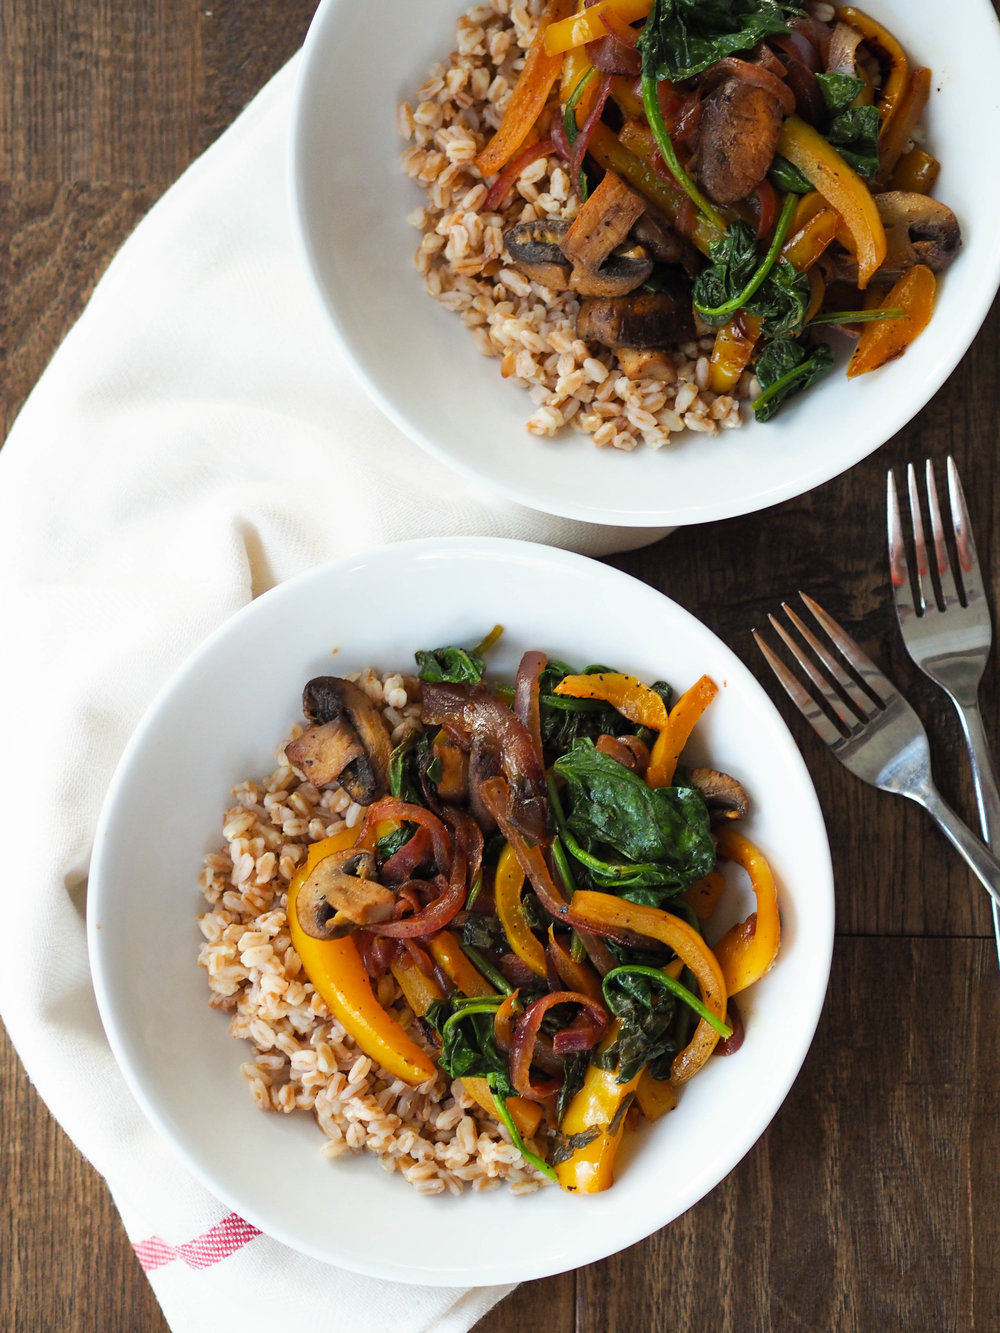 If you're craving veggies, you'll love this simple Black Pepper and Lemon Sauteed Vegetables with Farro! Add chicken or chickpeas to bulk it up with protein!